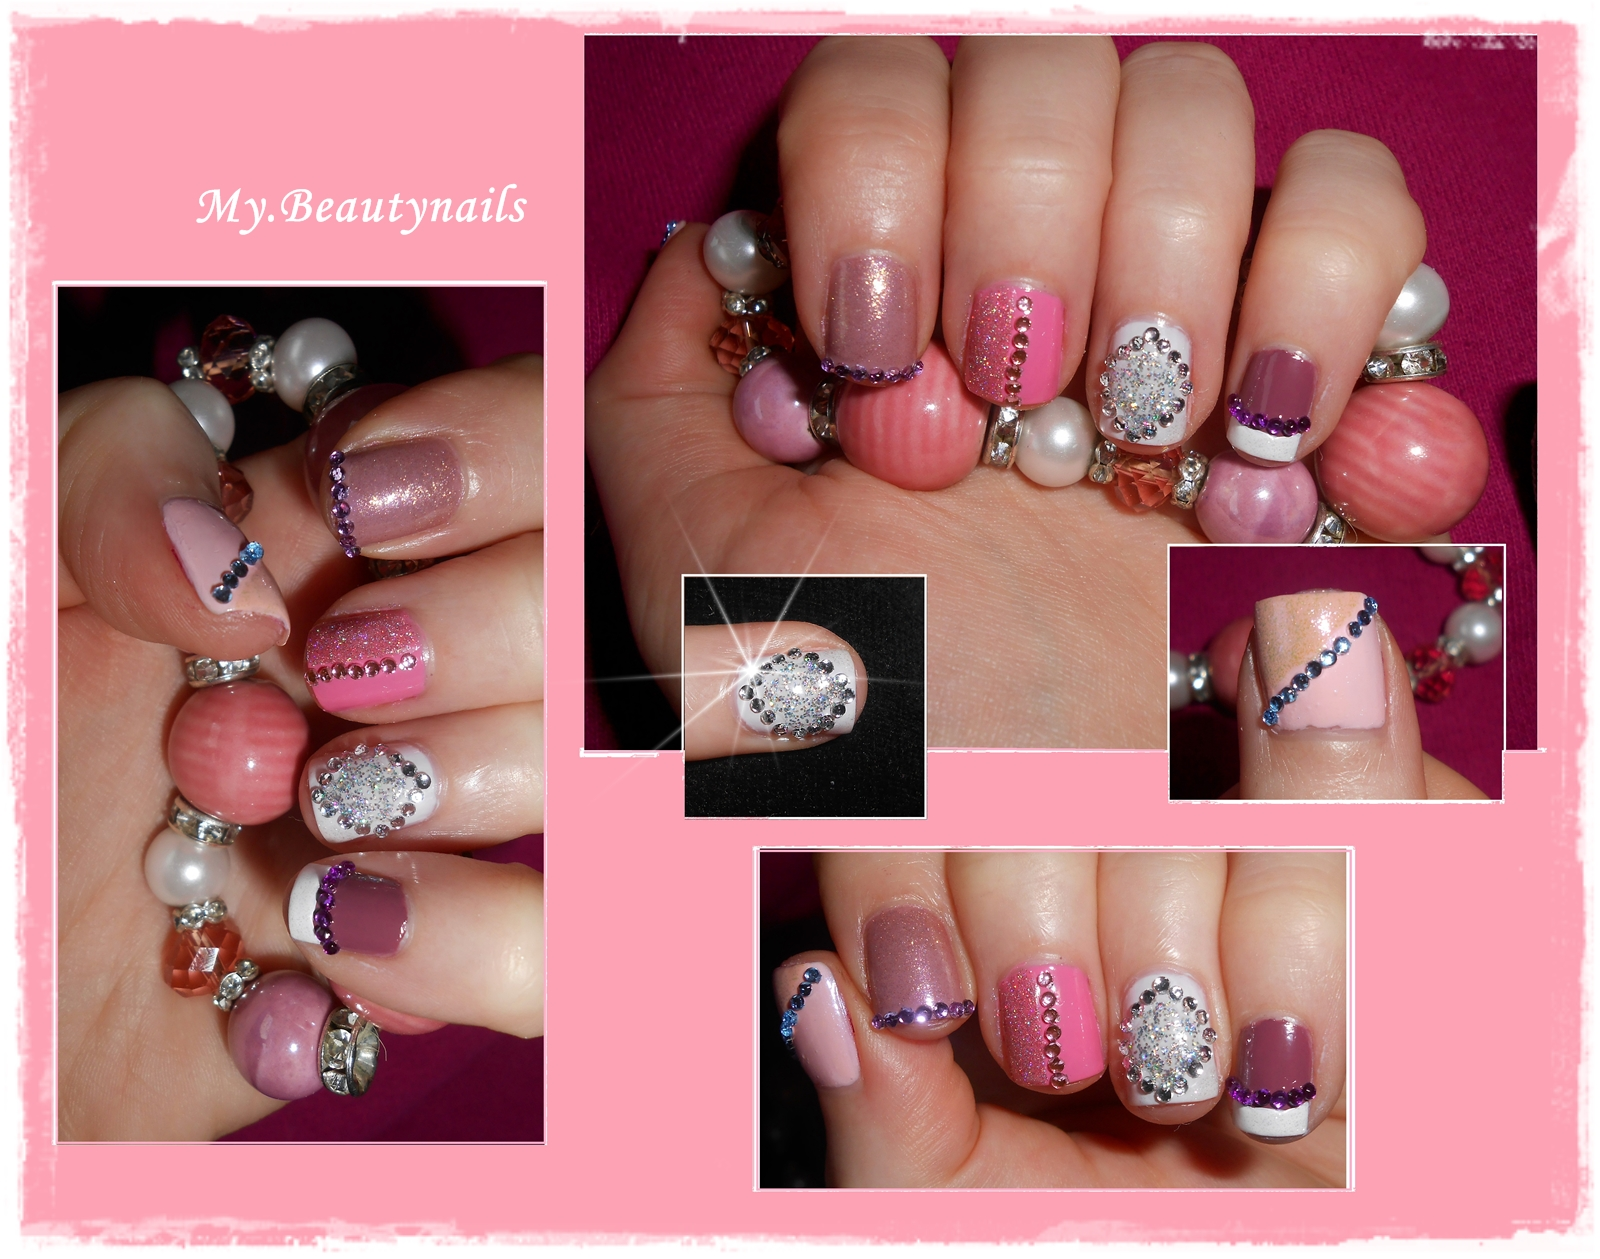 My-Beautynails: Dezember 2012